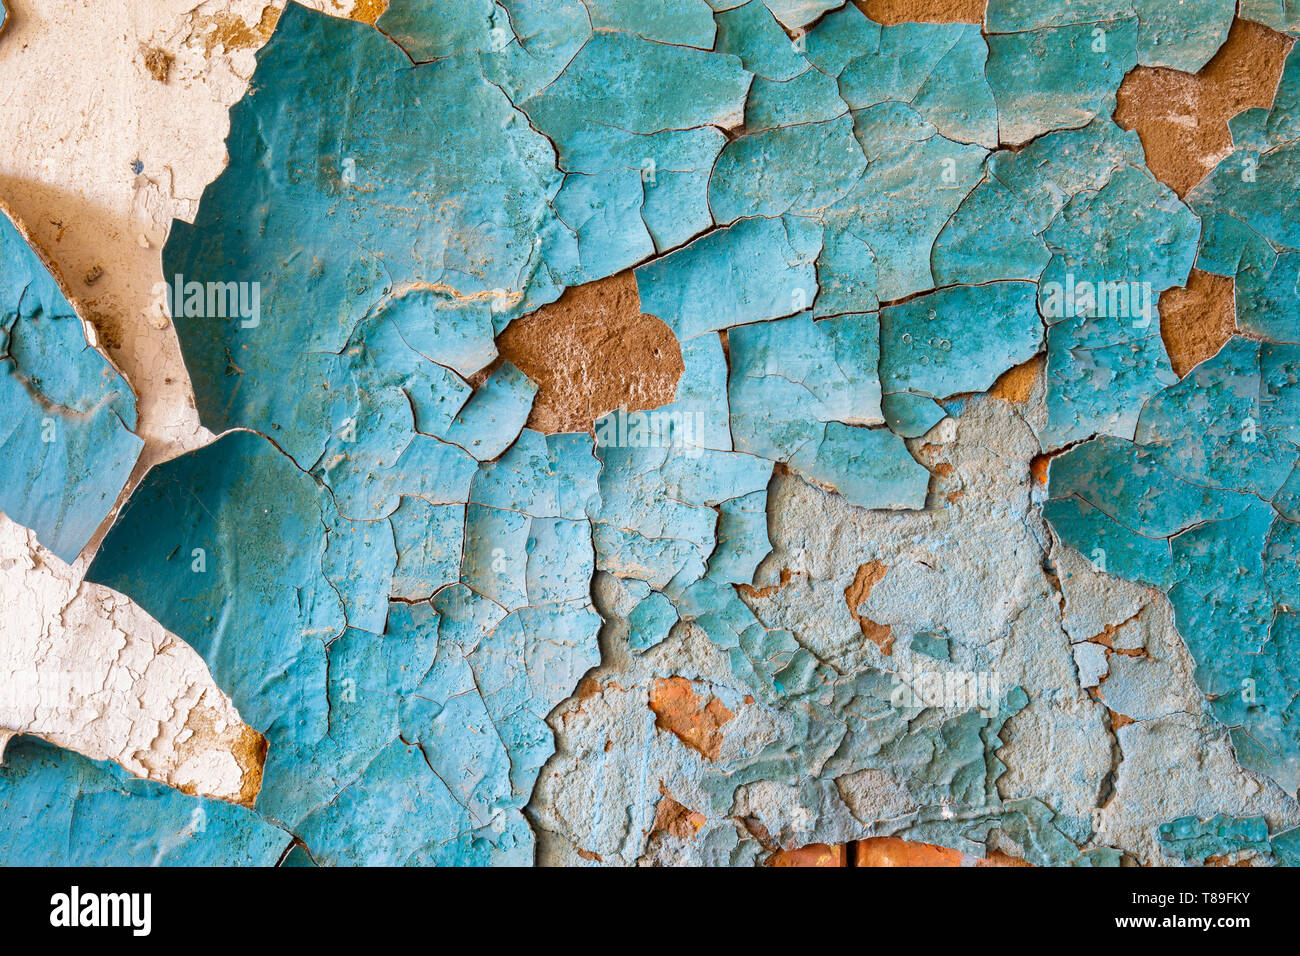 Texture of blue peeling paint on an old wall in an abandoned house - Stock Image